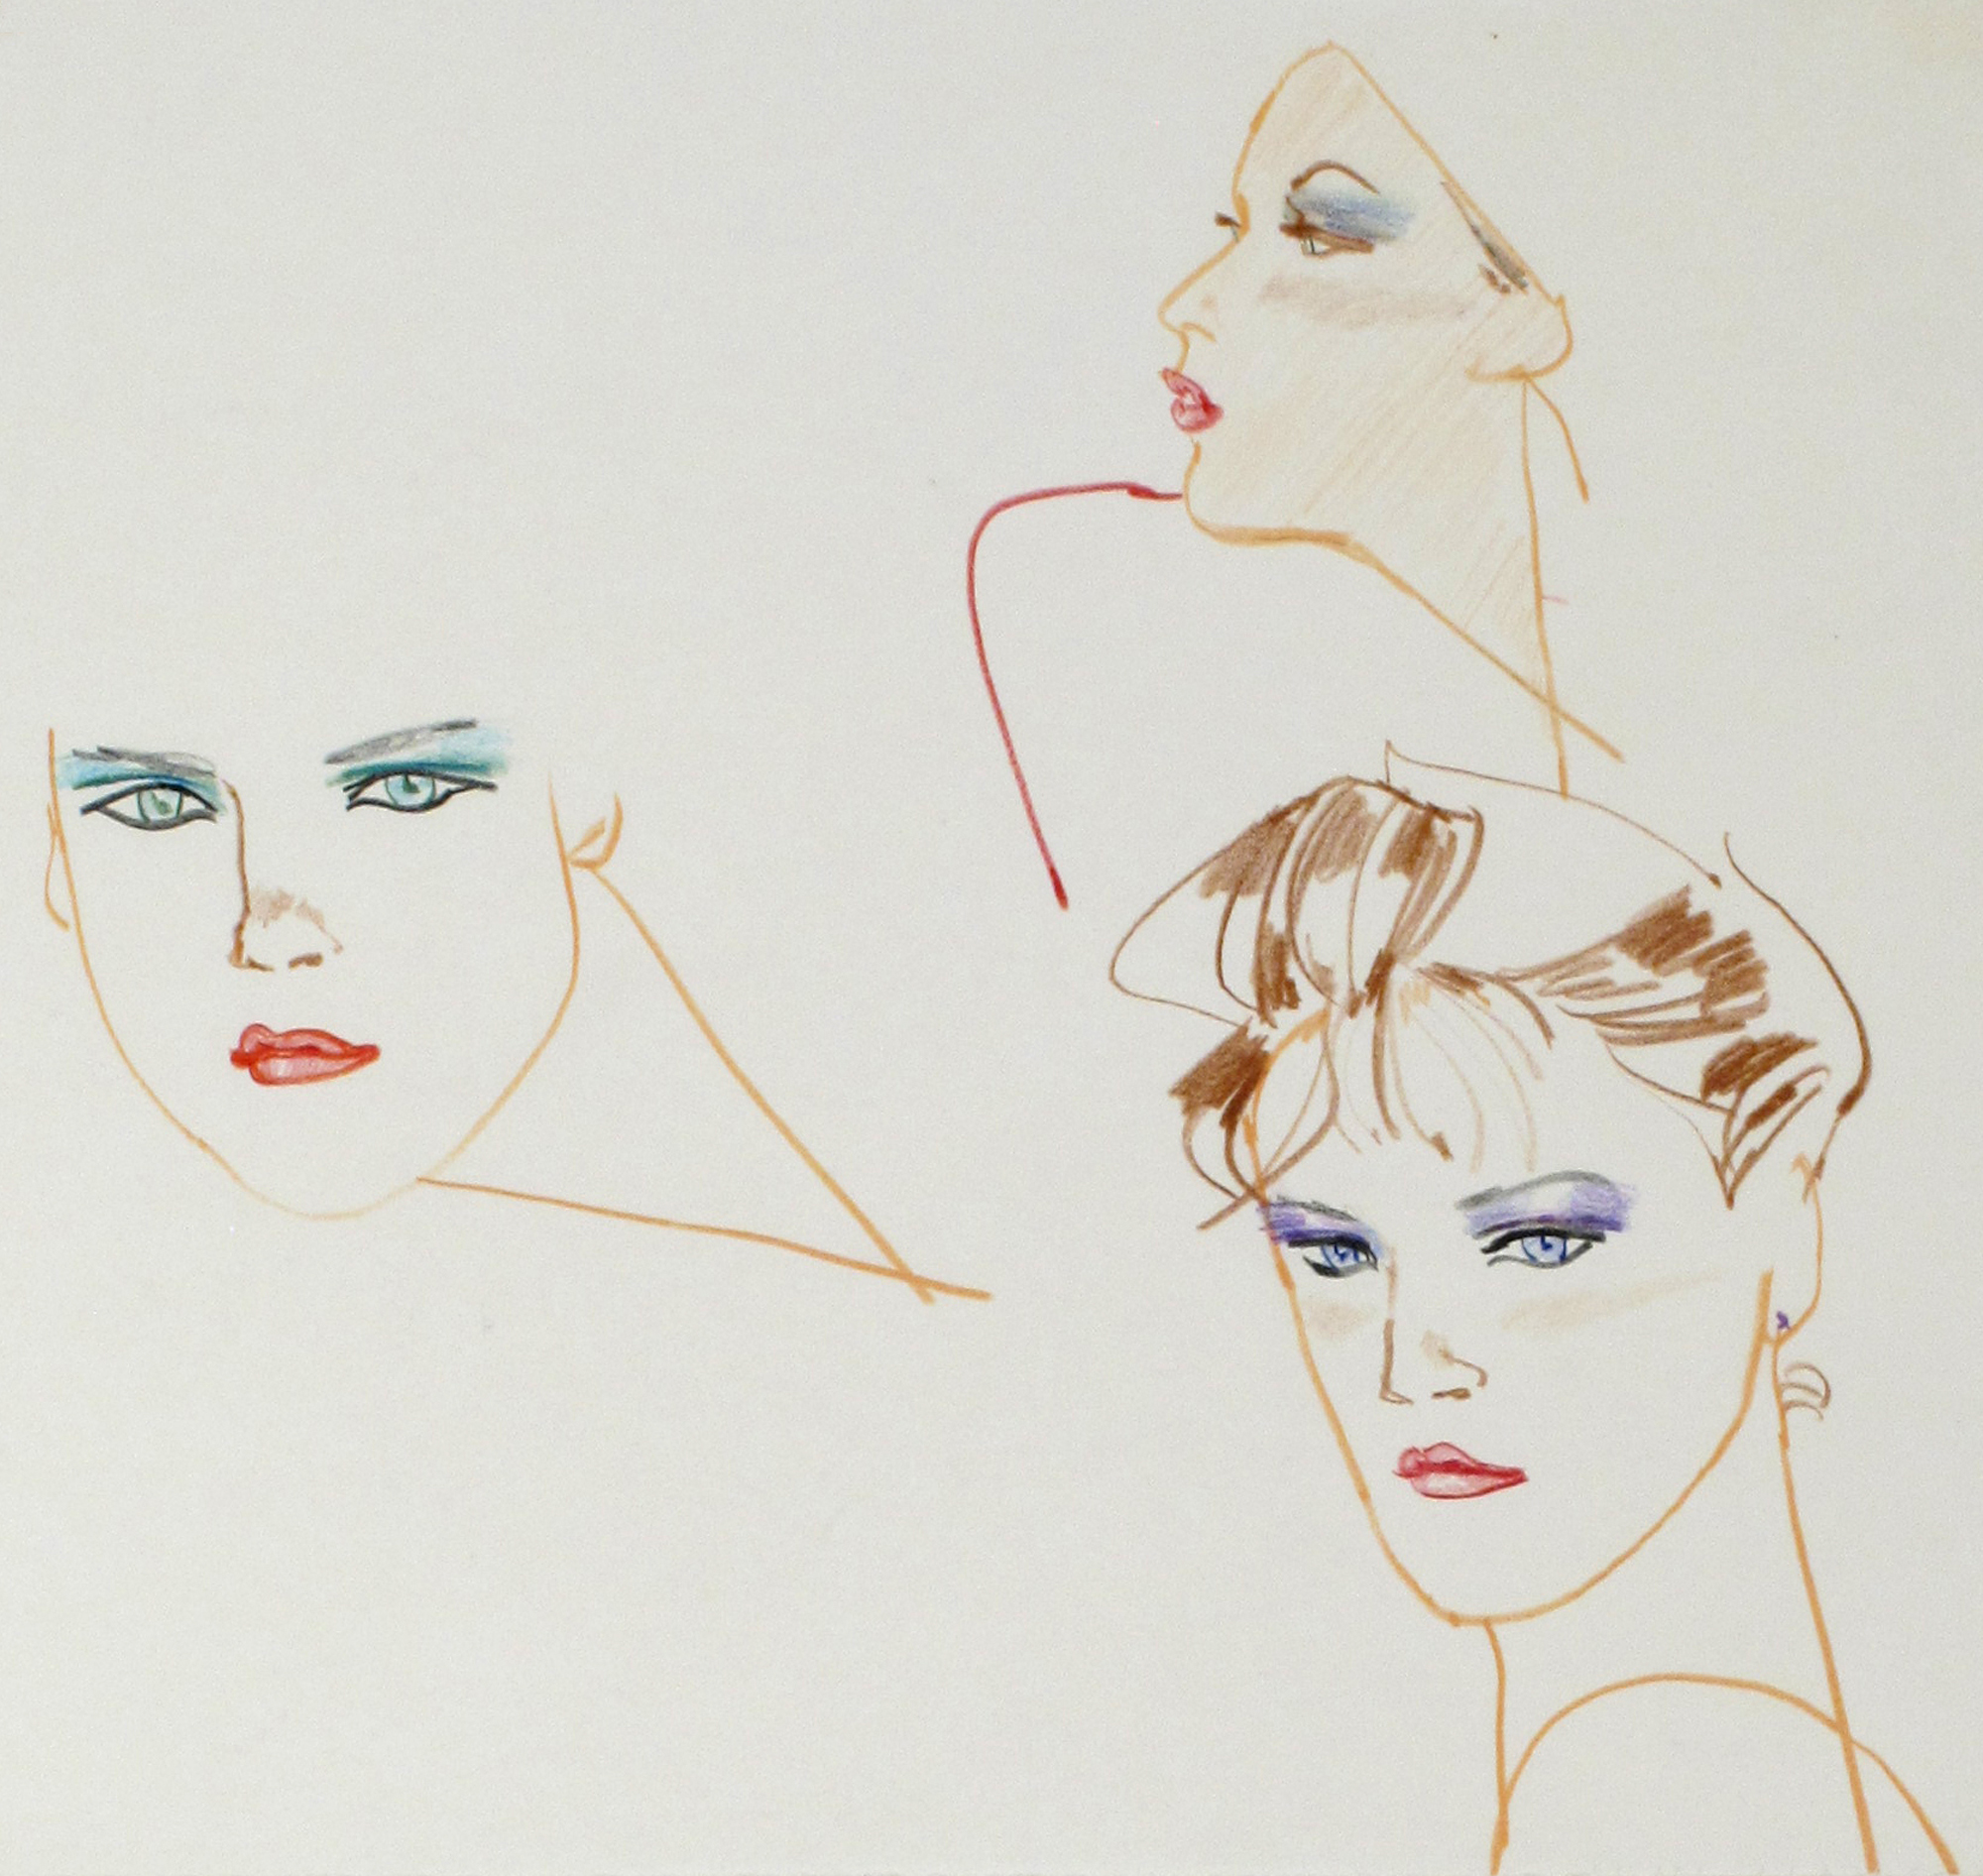 Untitled [Three Face Sketches in Color]